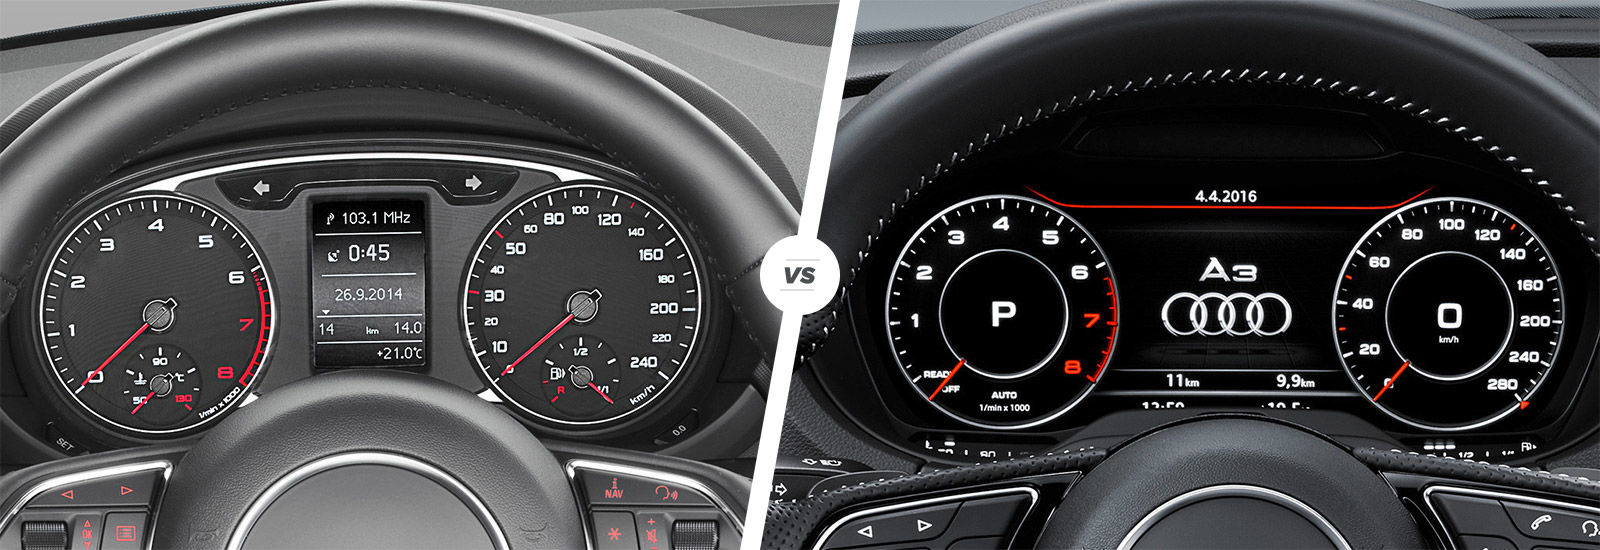 Audi A1 vs A3 side-by-side comparison   carwow